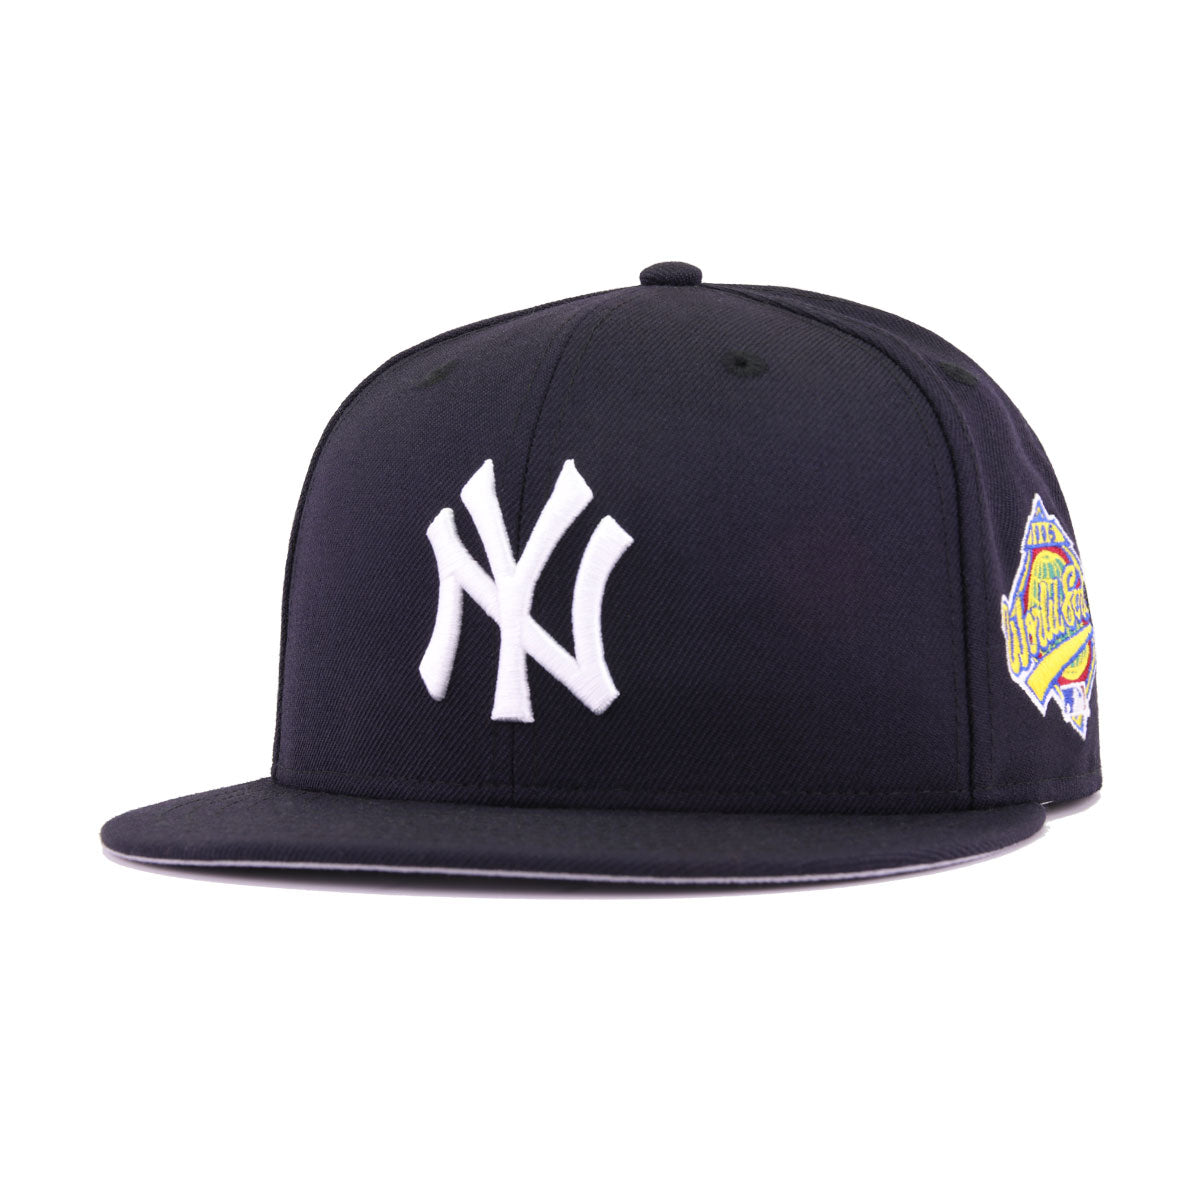 New York Yankees Navy Cooperstown 1996 World Series New Era 59Fifty Fitted